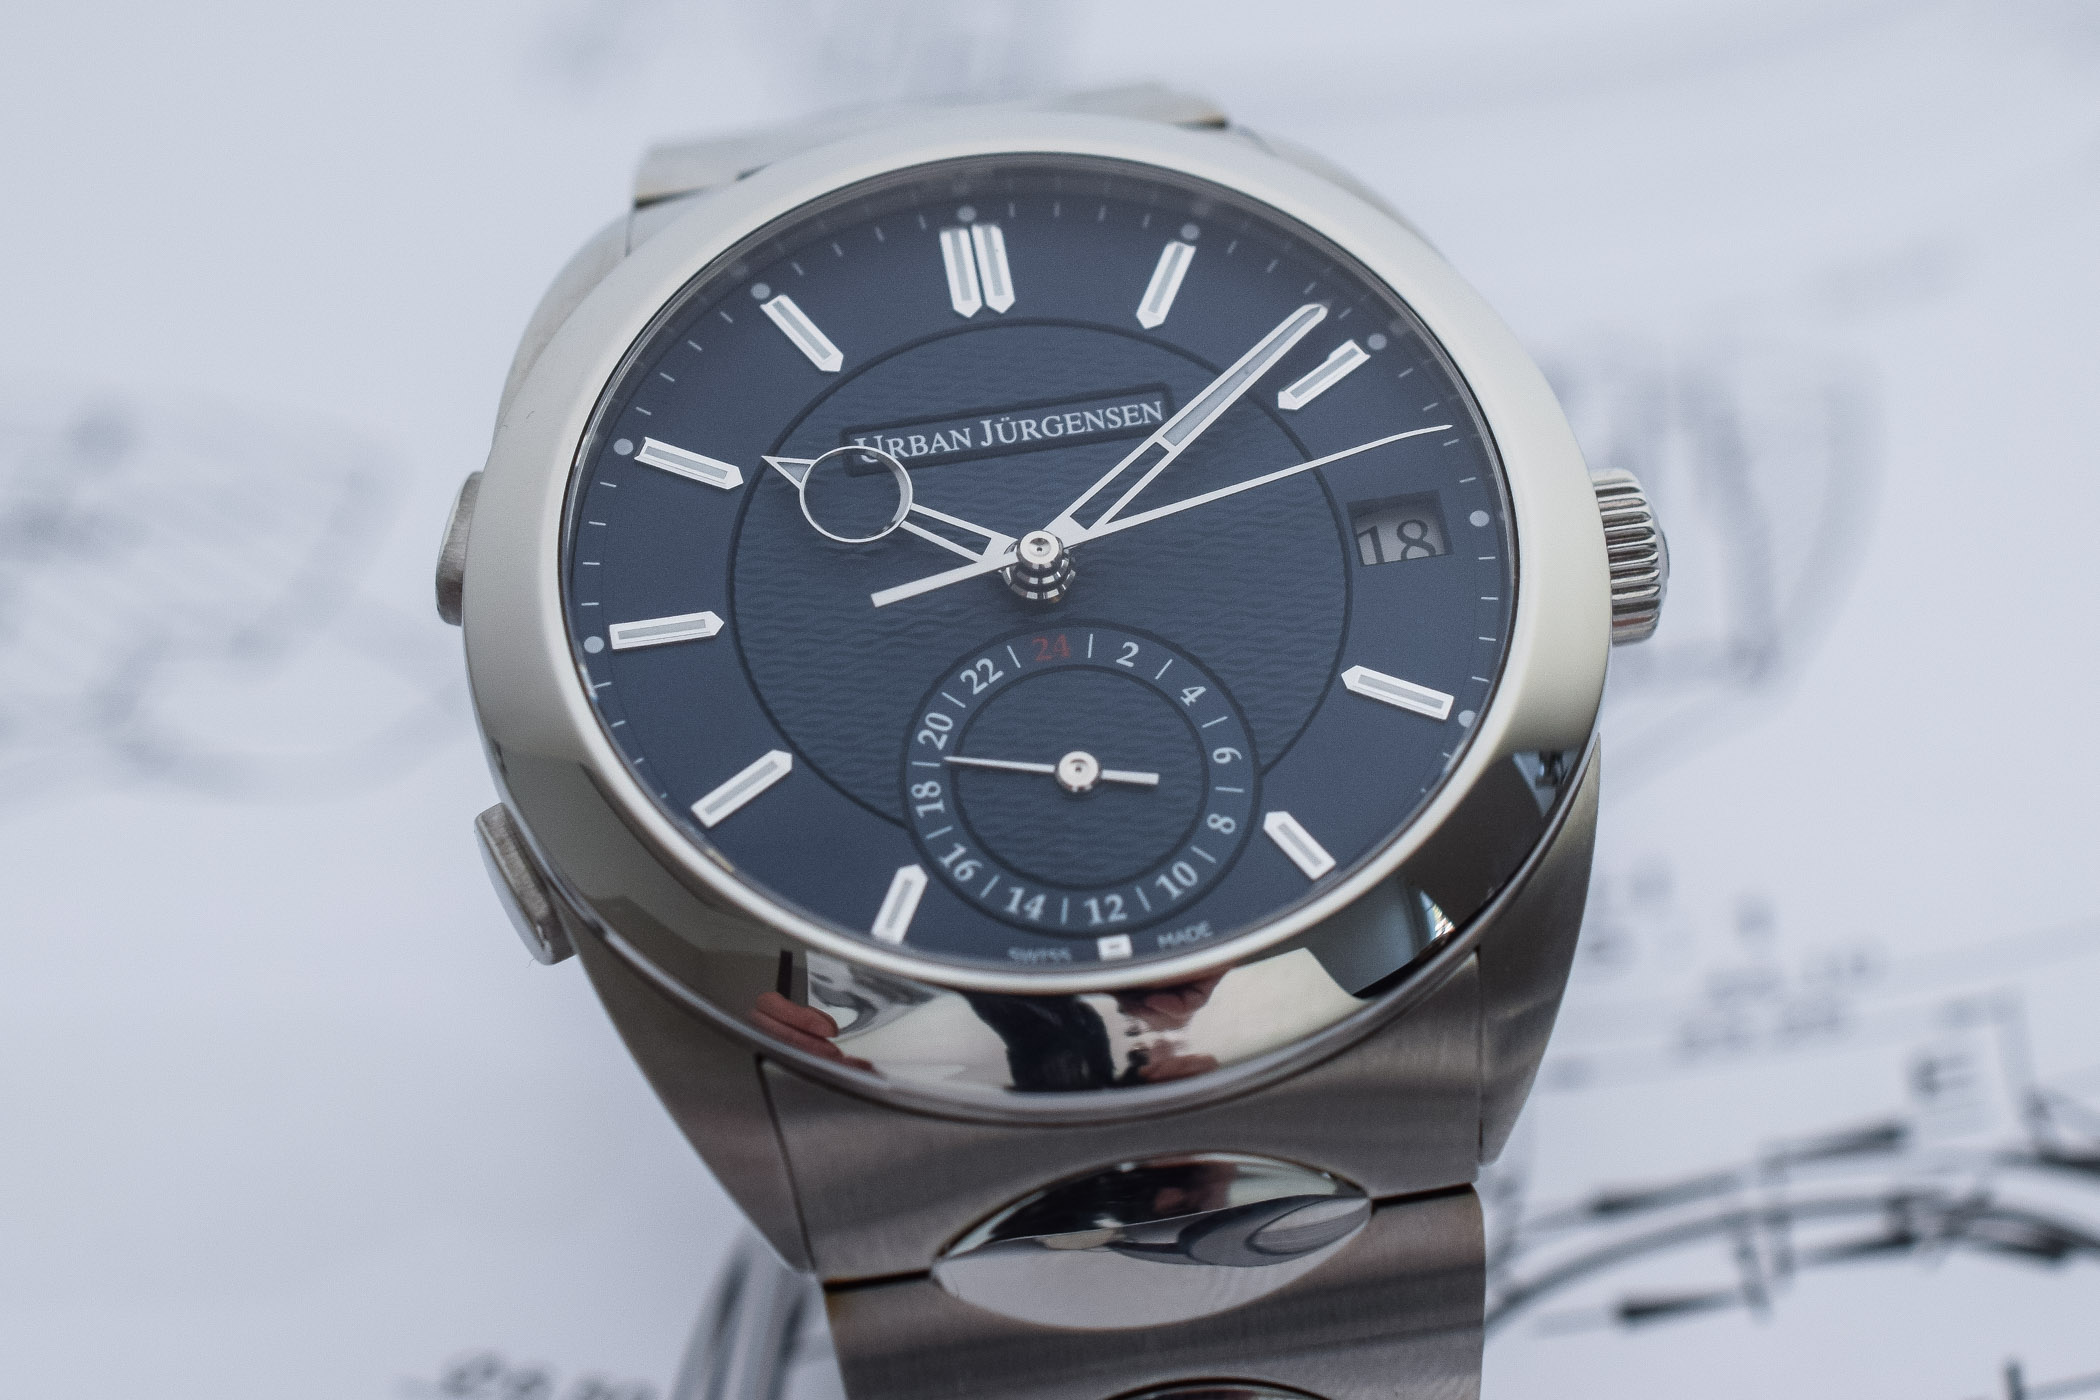 Urban Jurgensen First Luxury Sports Watch - Jurgensen One Collection - 9